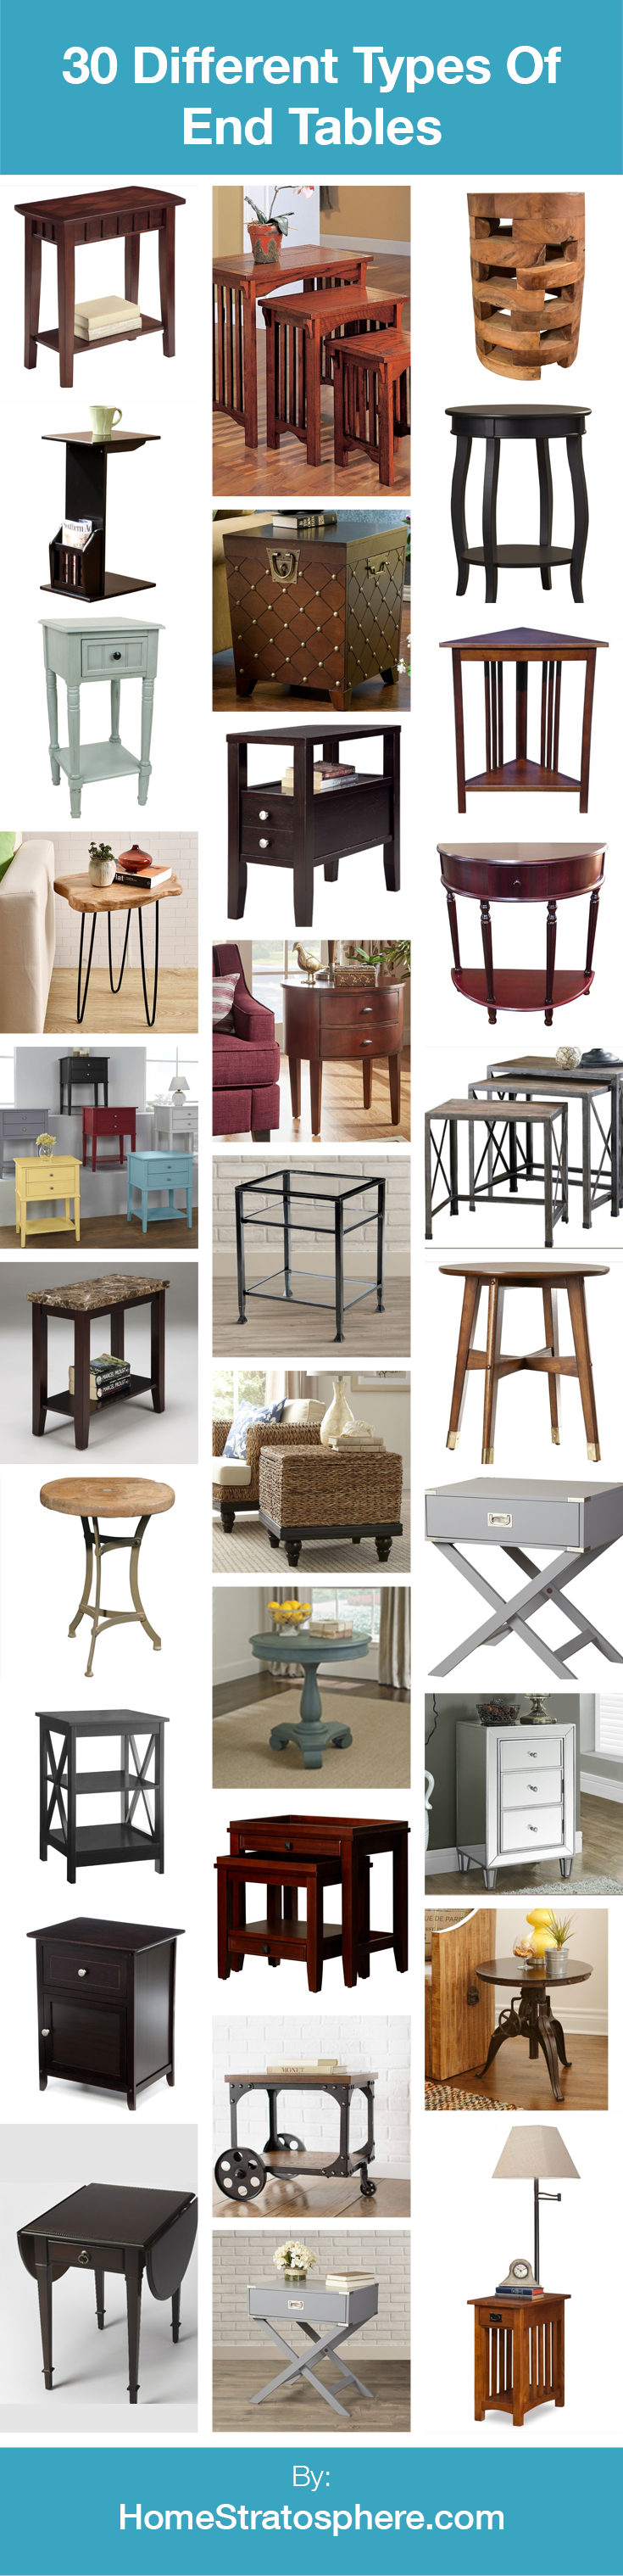 Room · 30 Different Types Of End Tables (Buying Guide)